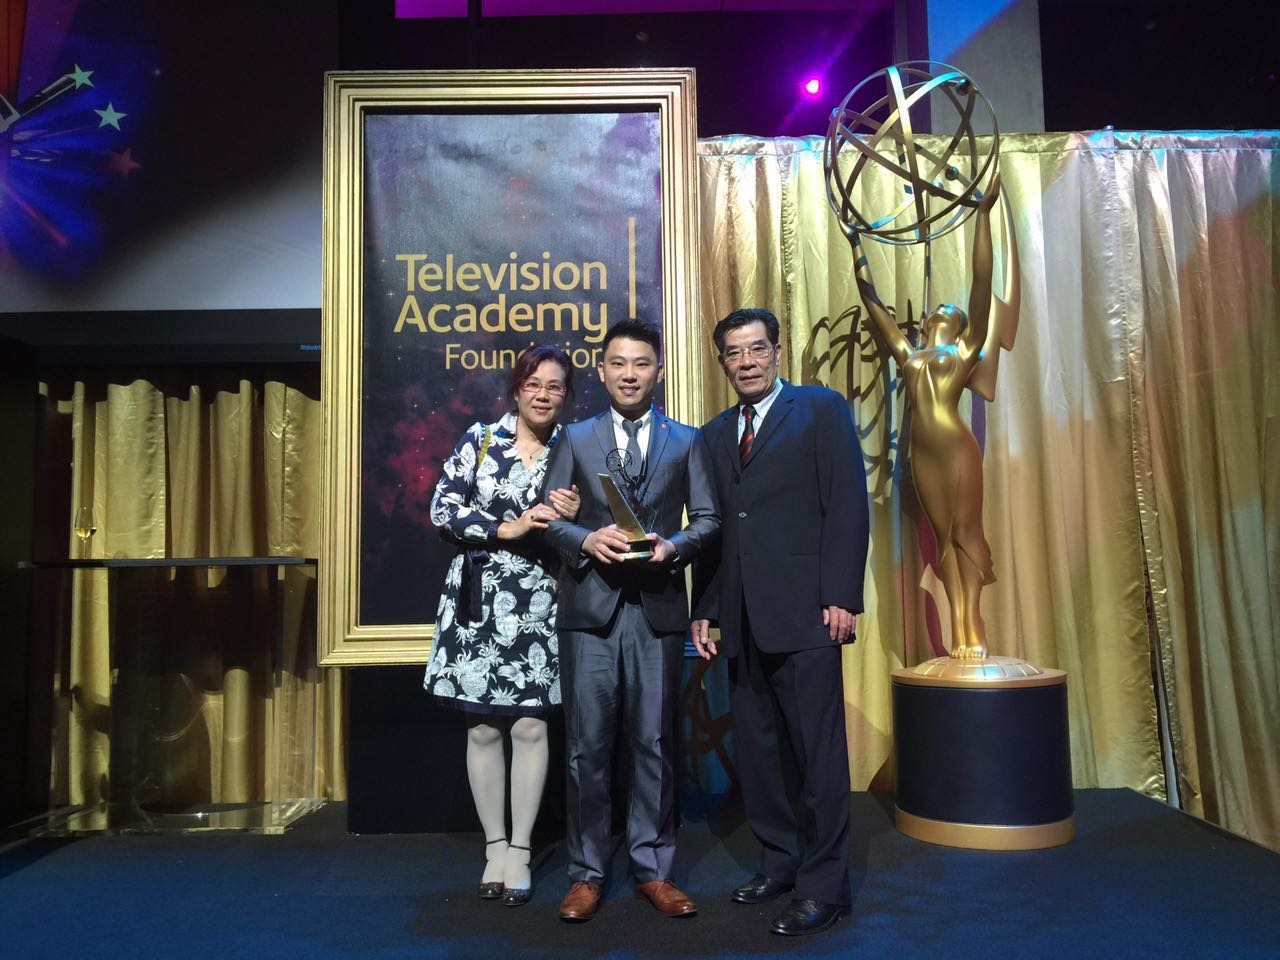 Filmmaker Cheok Lei posing with his award at the Television Academy